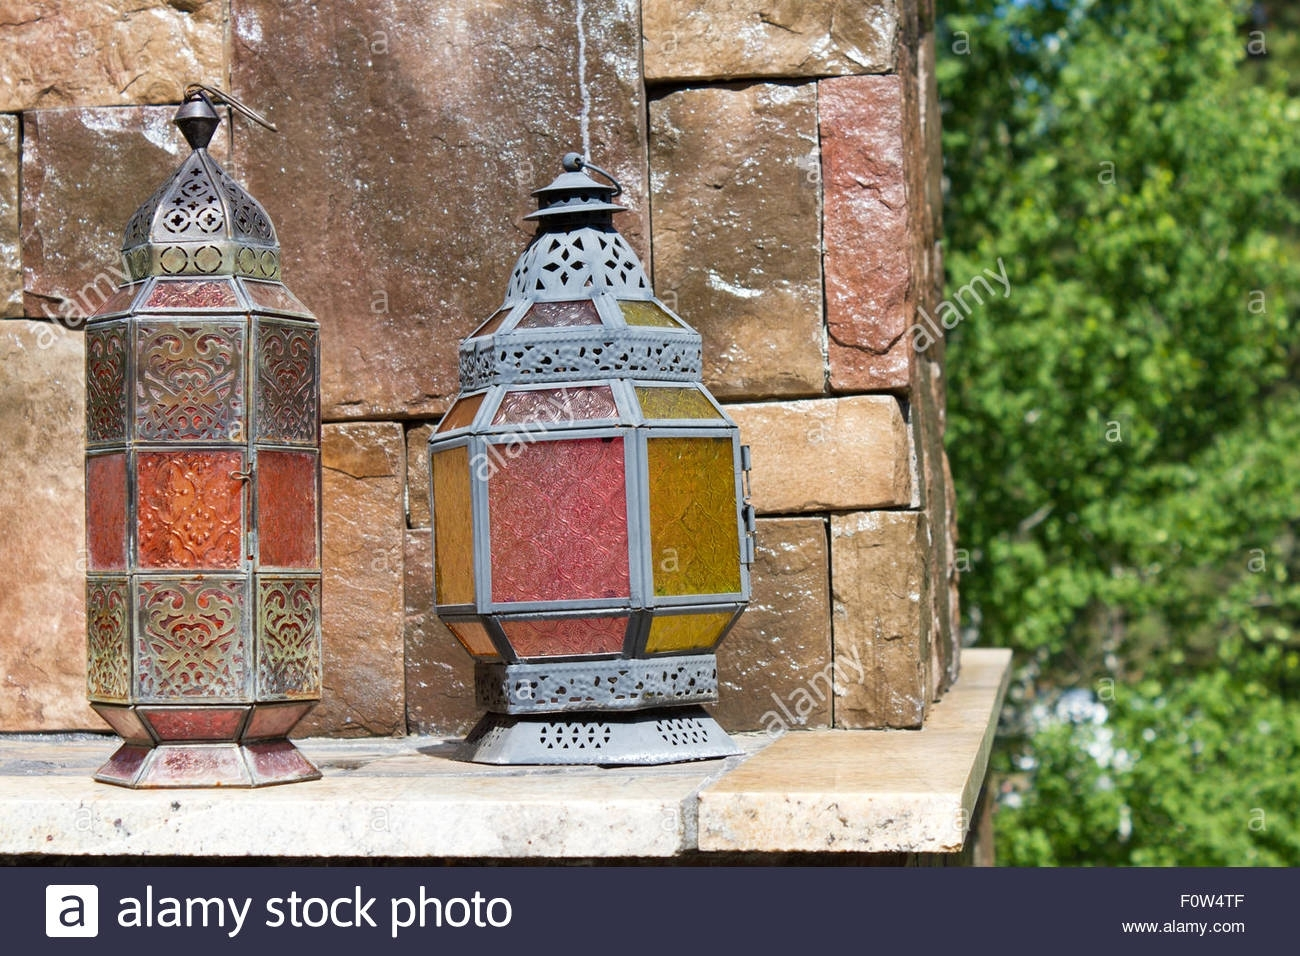 Antique Looking Metal Lanterns With Colorful Stained Glass Panels Regarding Colorful Outdoor Lanterns (View 1 of 20)